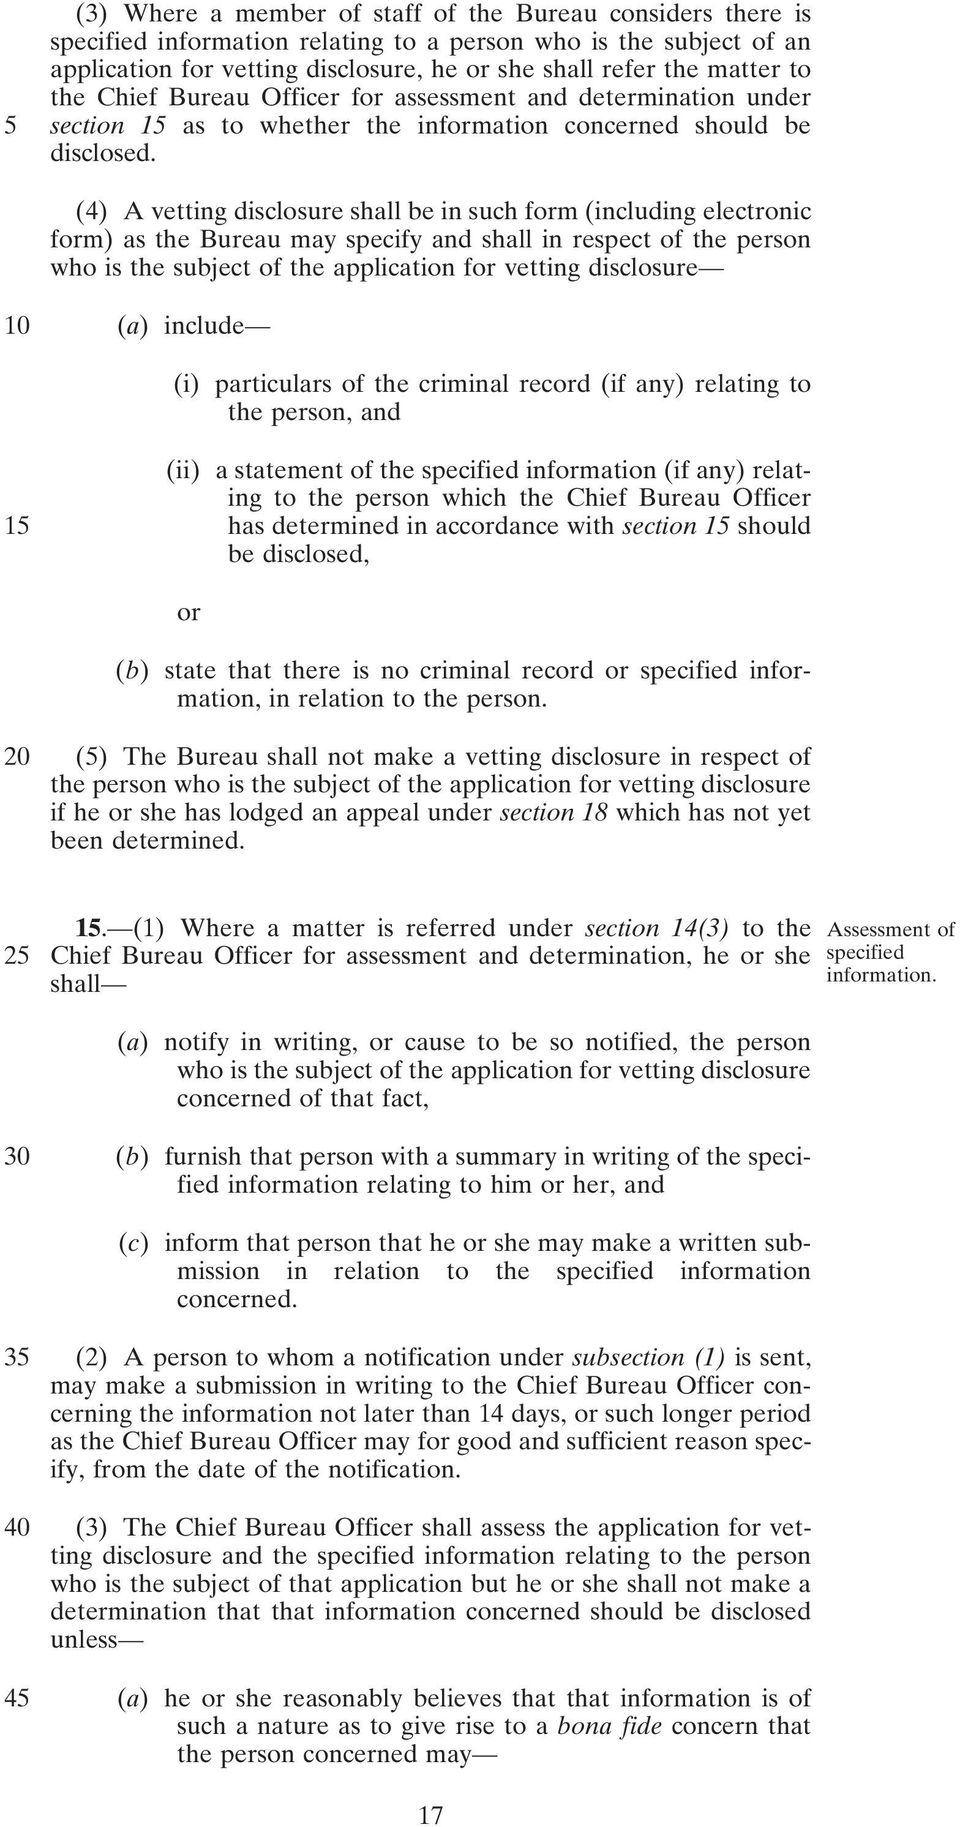 (4) A vetting disclosure shall be in such form (including electronic form) as the Bureau may specify and shall in respect of the person who is the subject of the application for vetting disclosure 10